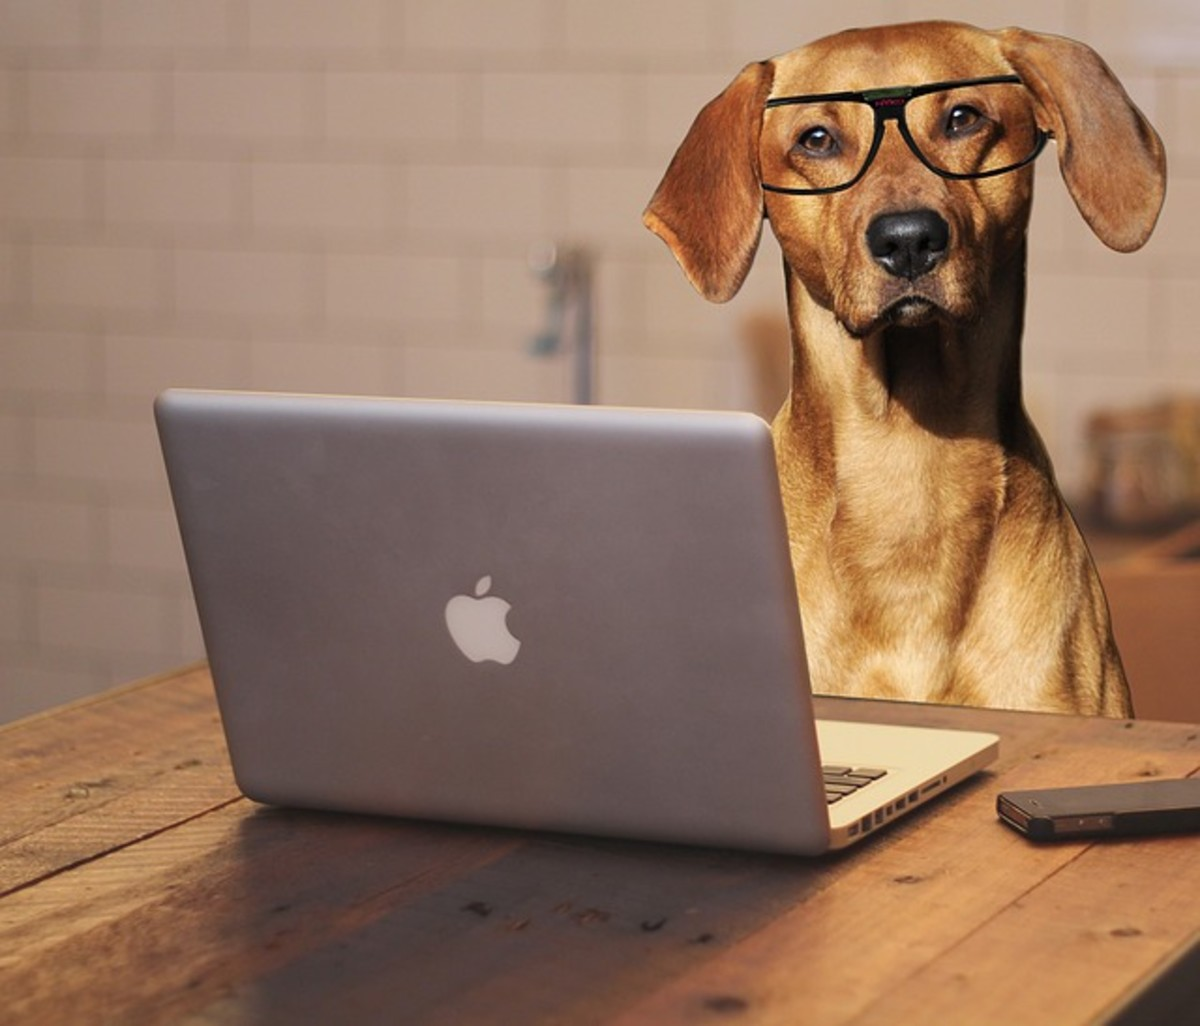 Nerdy dog with glasses on using Mac computer